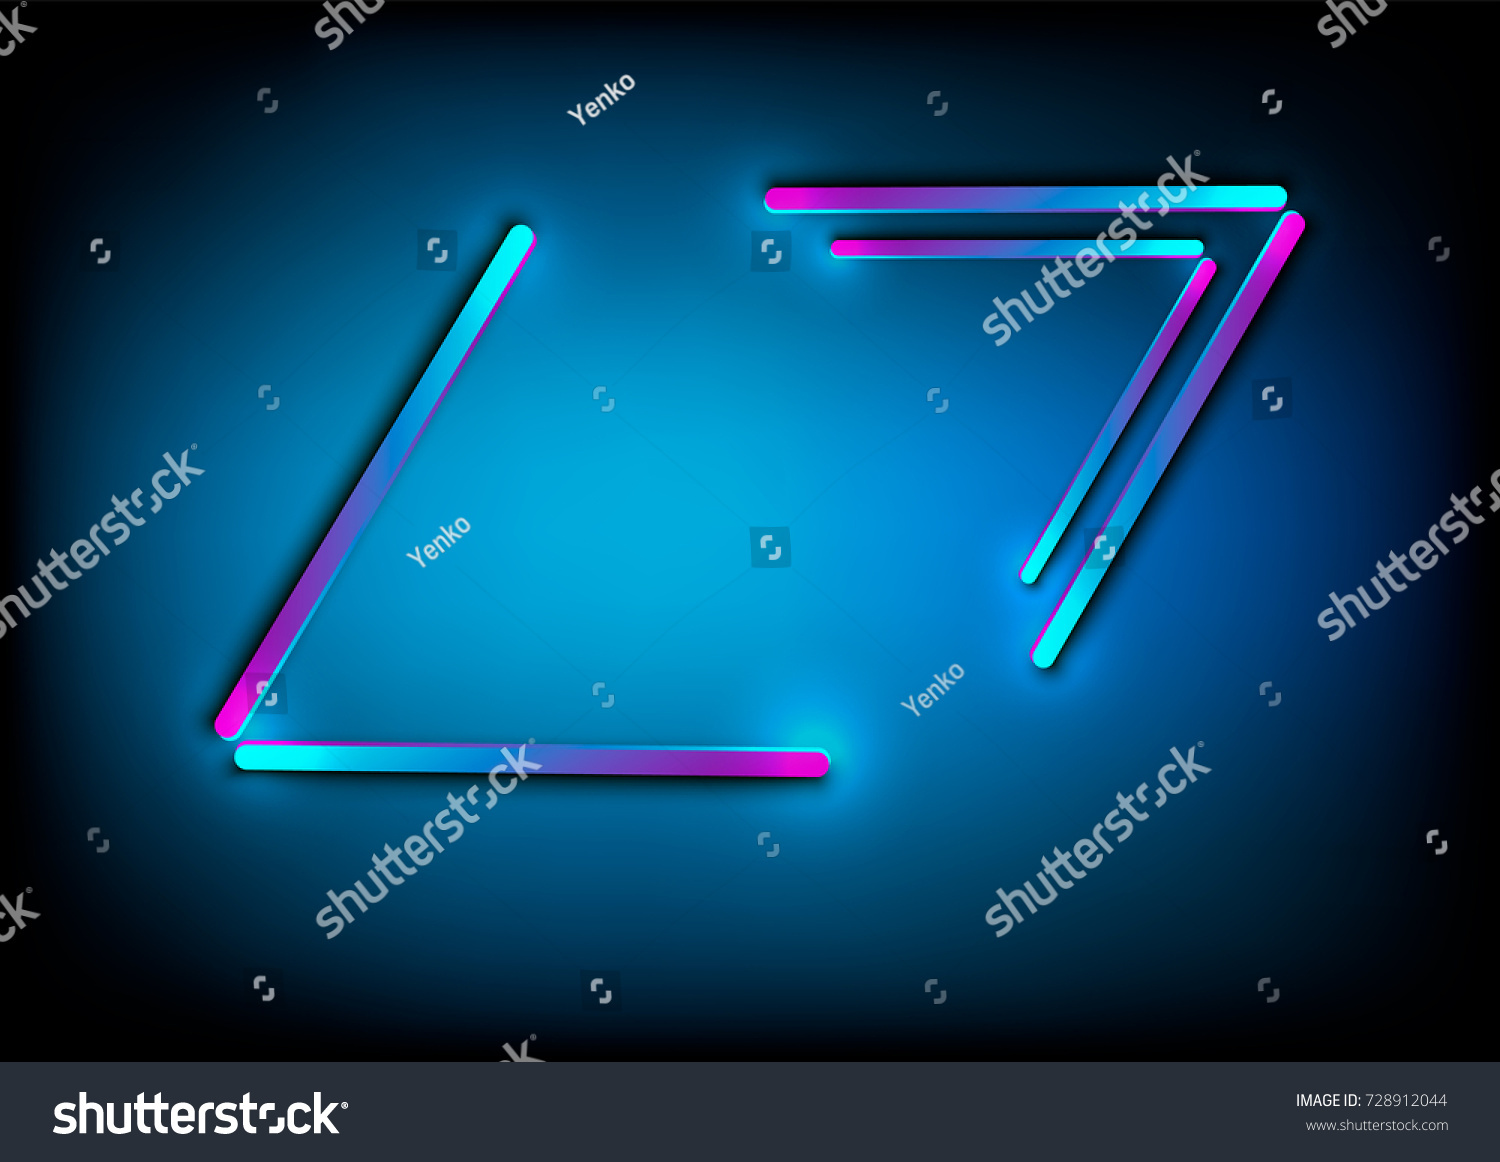 Neon abstract glowing frame vintage electric stock vector neon abstract glowing frame vintage electric symbol design element for your ad sign buycottarizona Choice Image